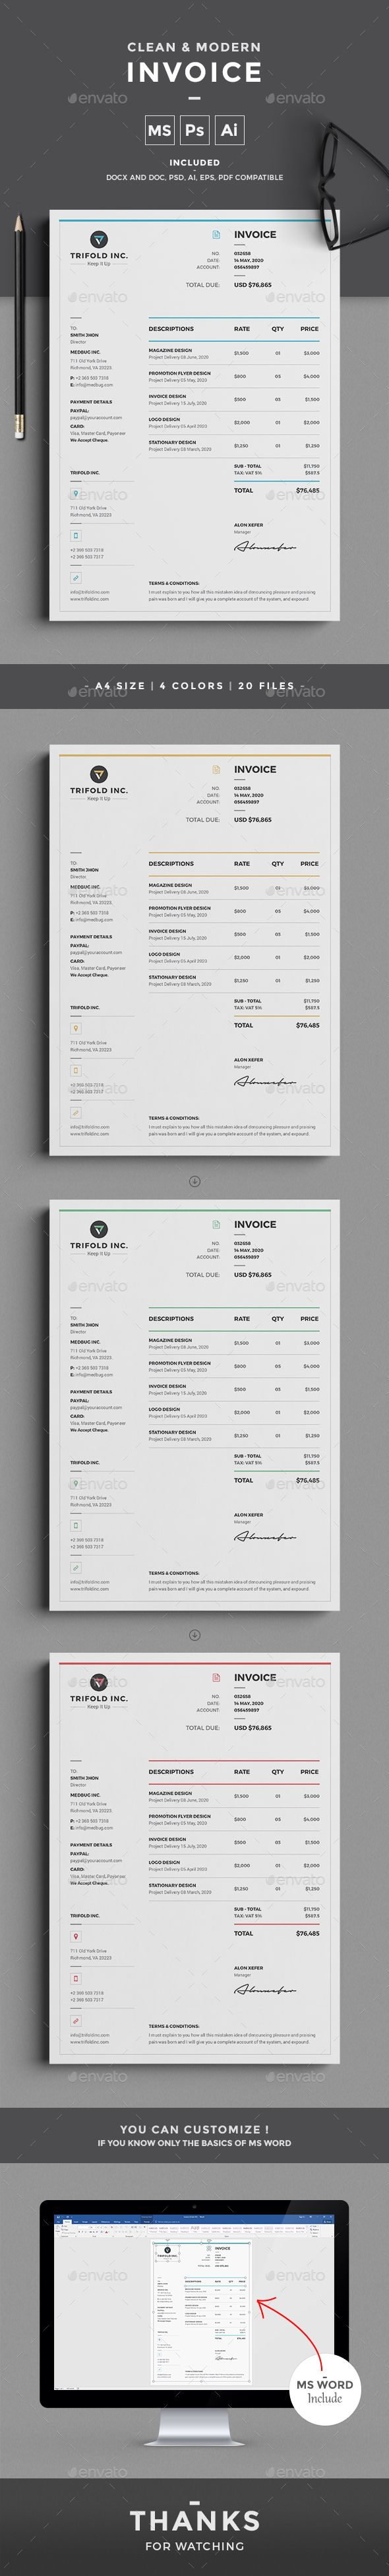 This professional Clean & Modern Invoice template will help you in your business to save time, organize you product data and customers info and easily generate the invoice by inserting the costumers ID and Item. It is designed for personal and corporate use.